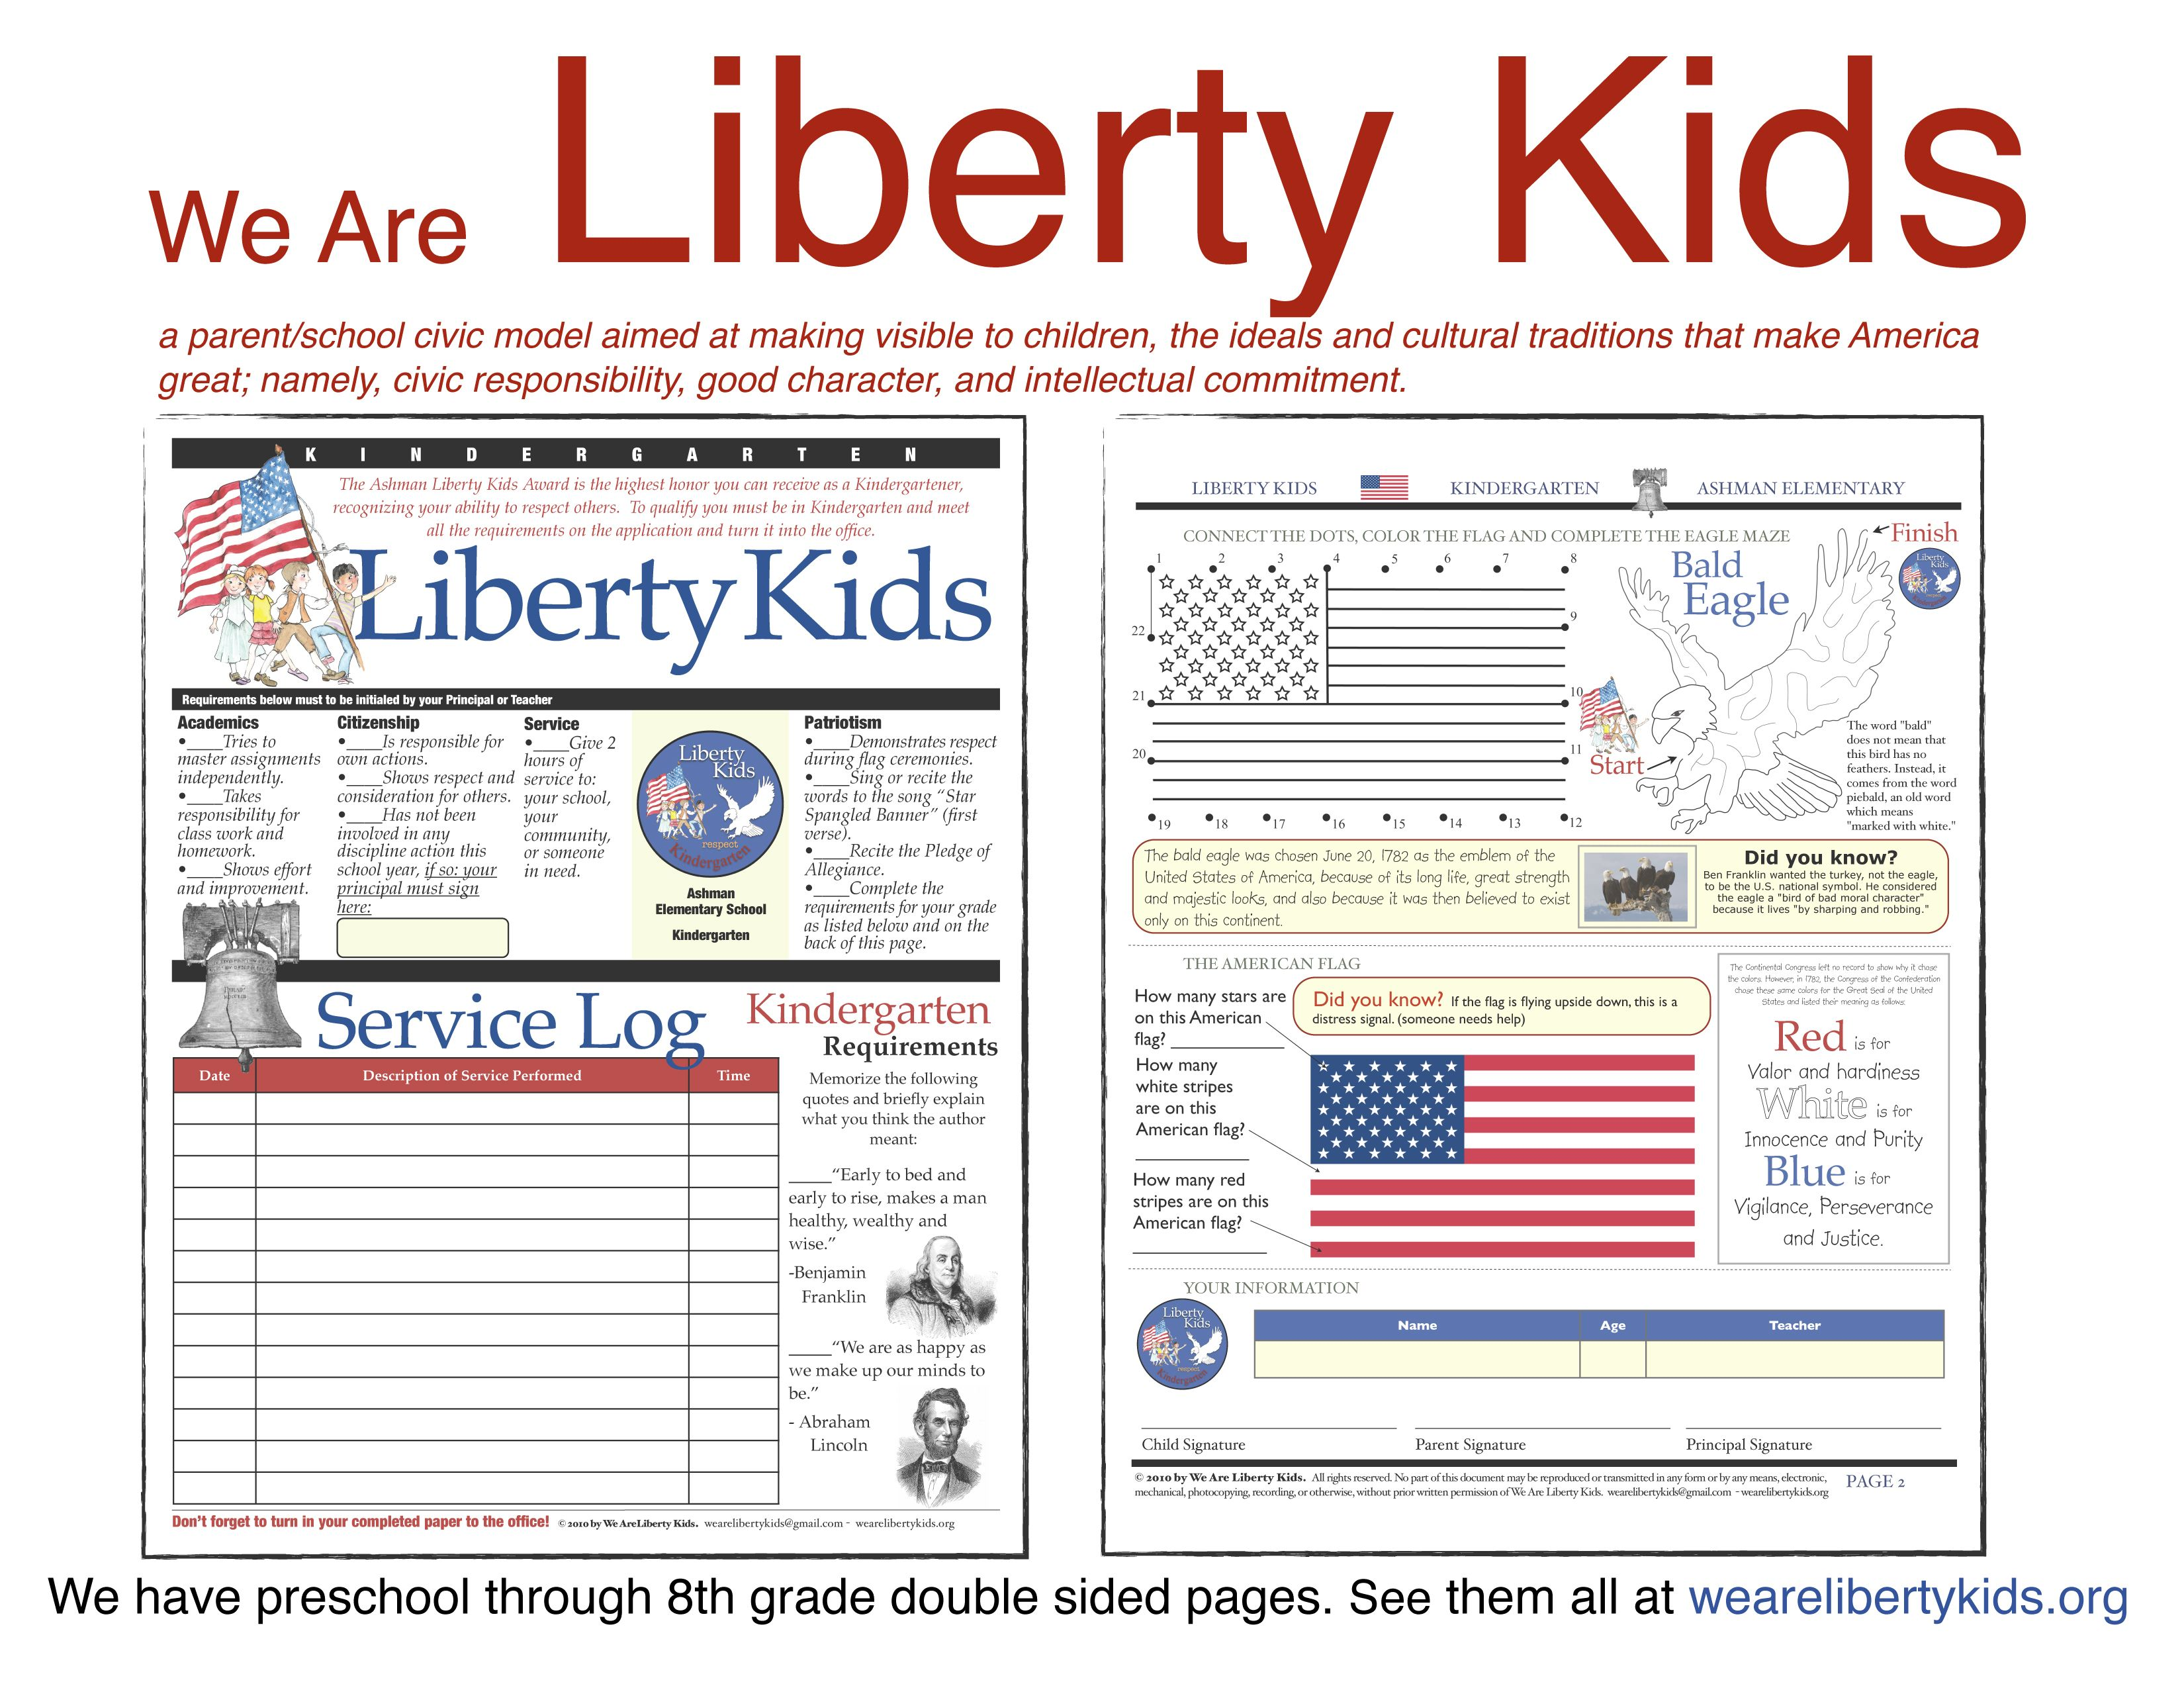 We Are Liberty Kids